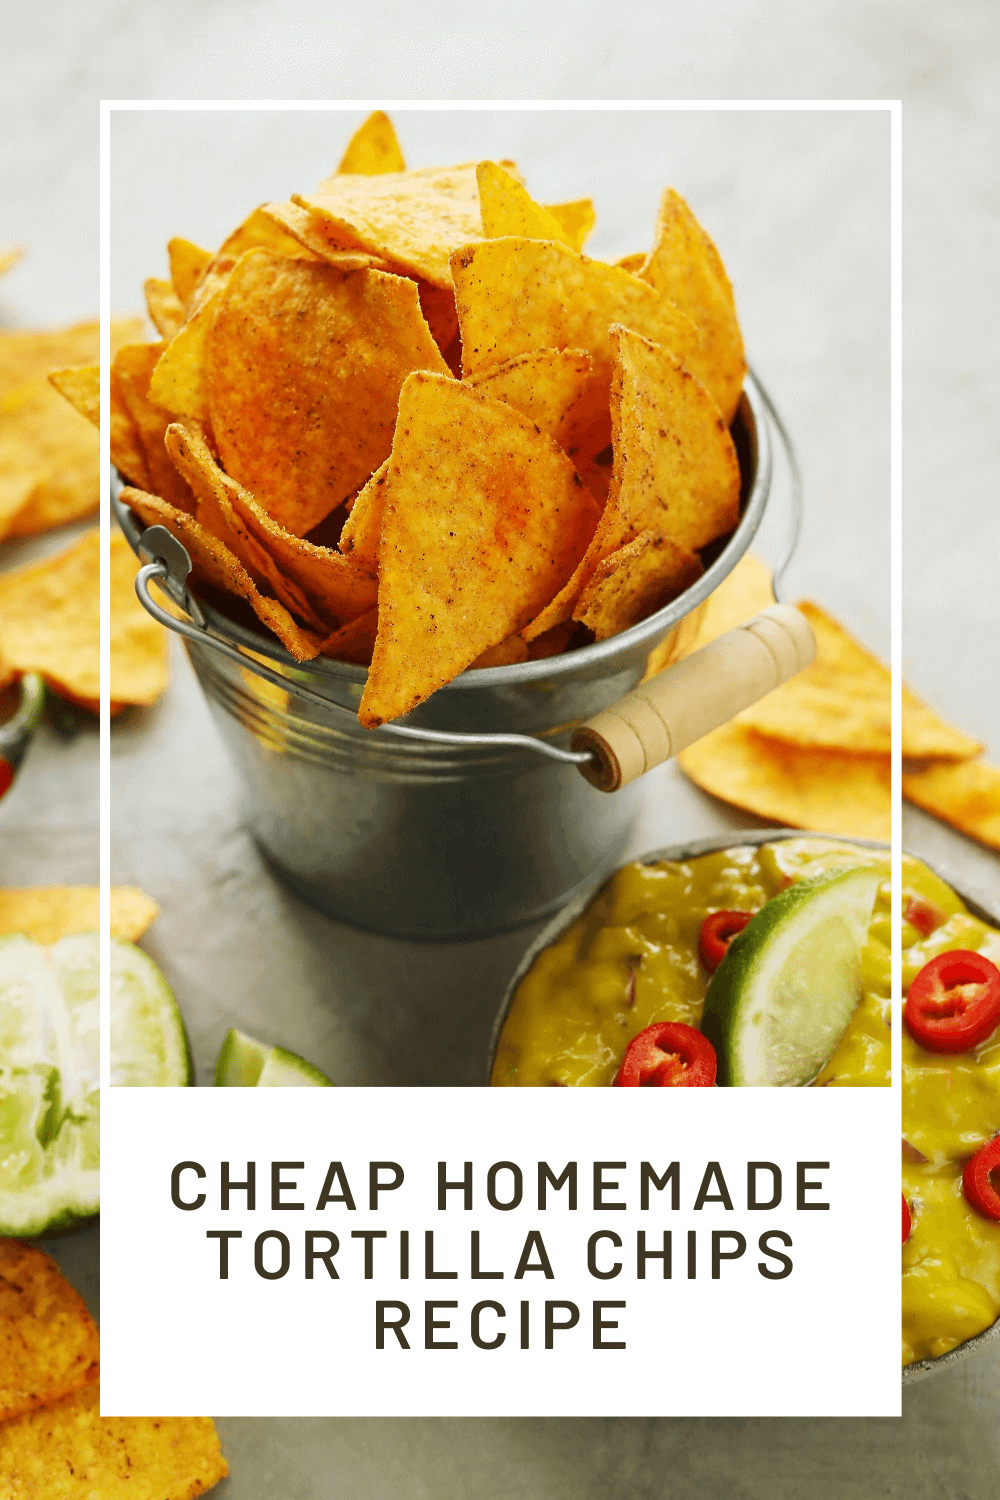 Homemade tortilla chips without oil - cheap, delicious and ready in minutes!